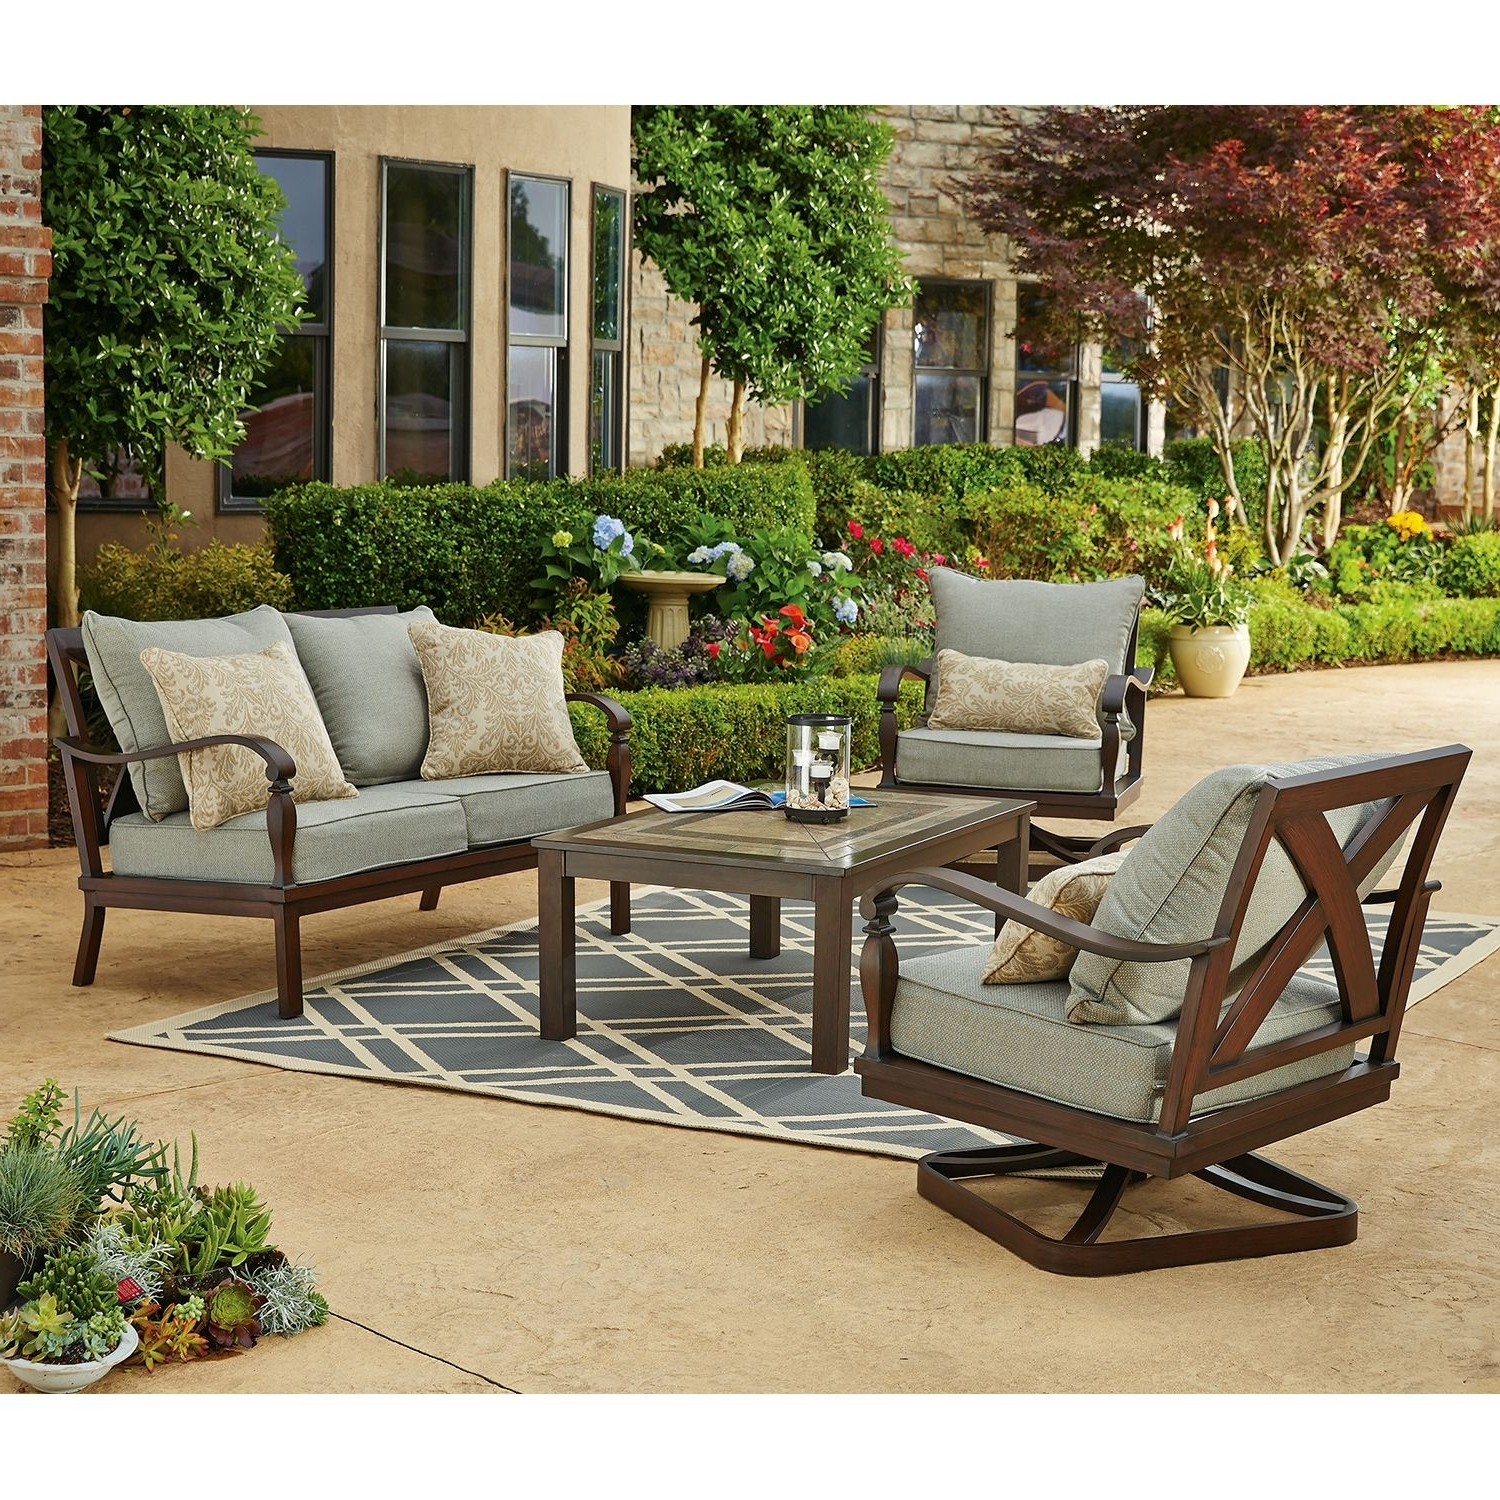 Iron Patio Conversation Sets With Regard To Most Recently Released Furniture: Cozy Wrought Iron Patio Chairs With Cushions And Gray (Gallery 14 of 15)